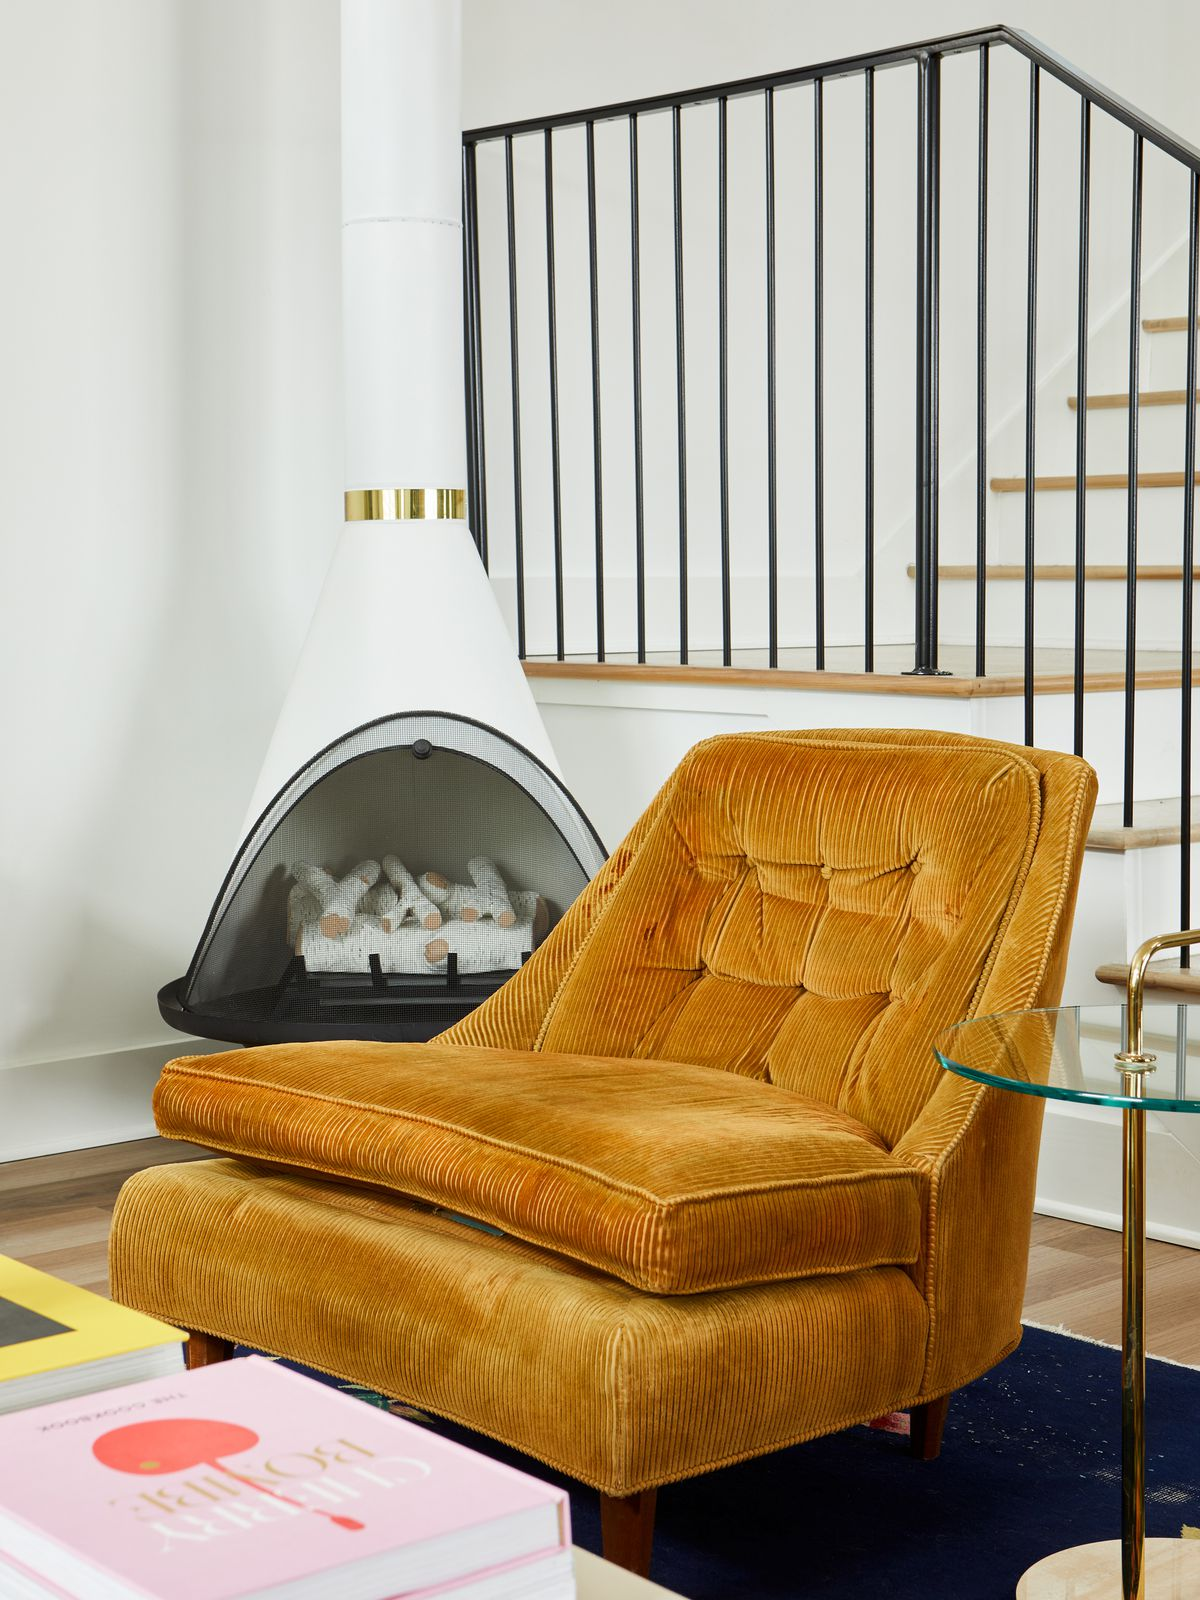 A large orange armchair is next to a white fireplace and in front of a staircase. There is a dark blue rug on the floor.